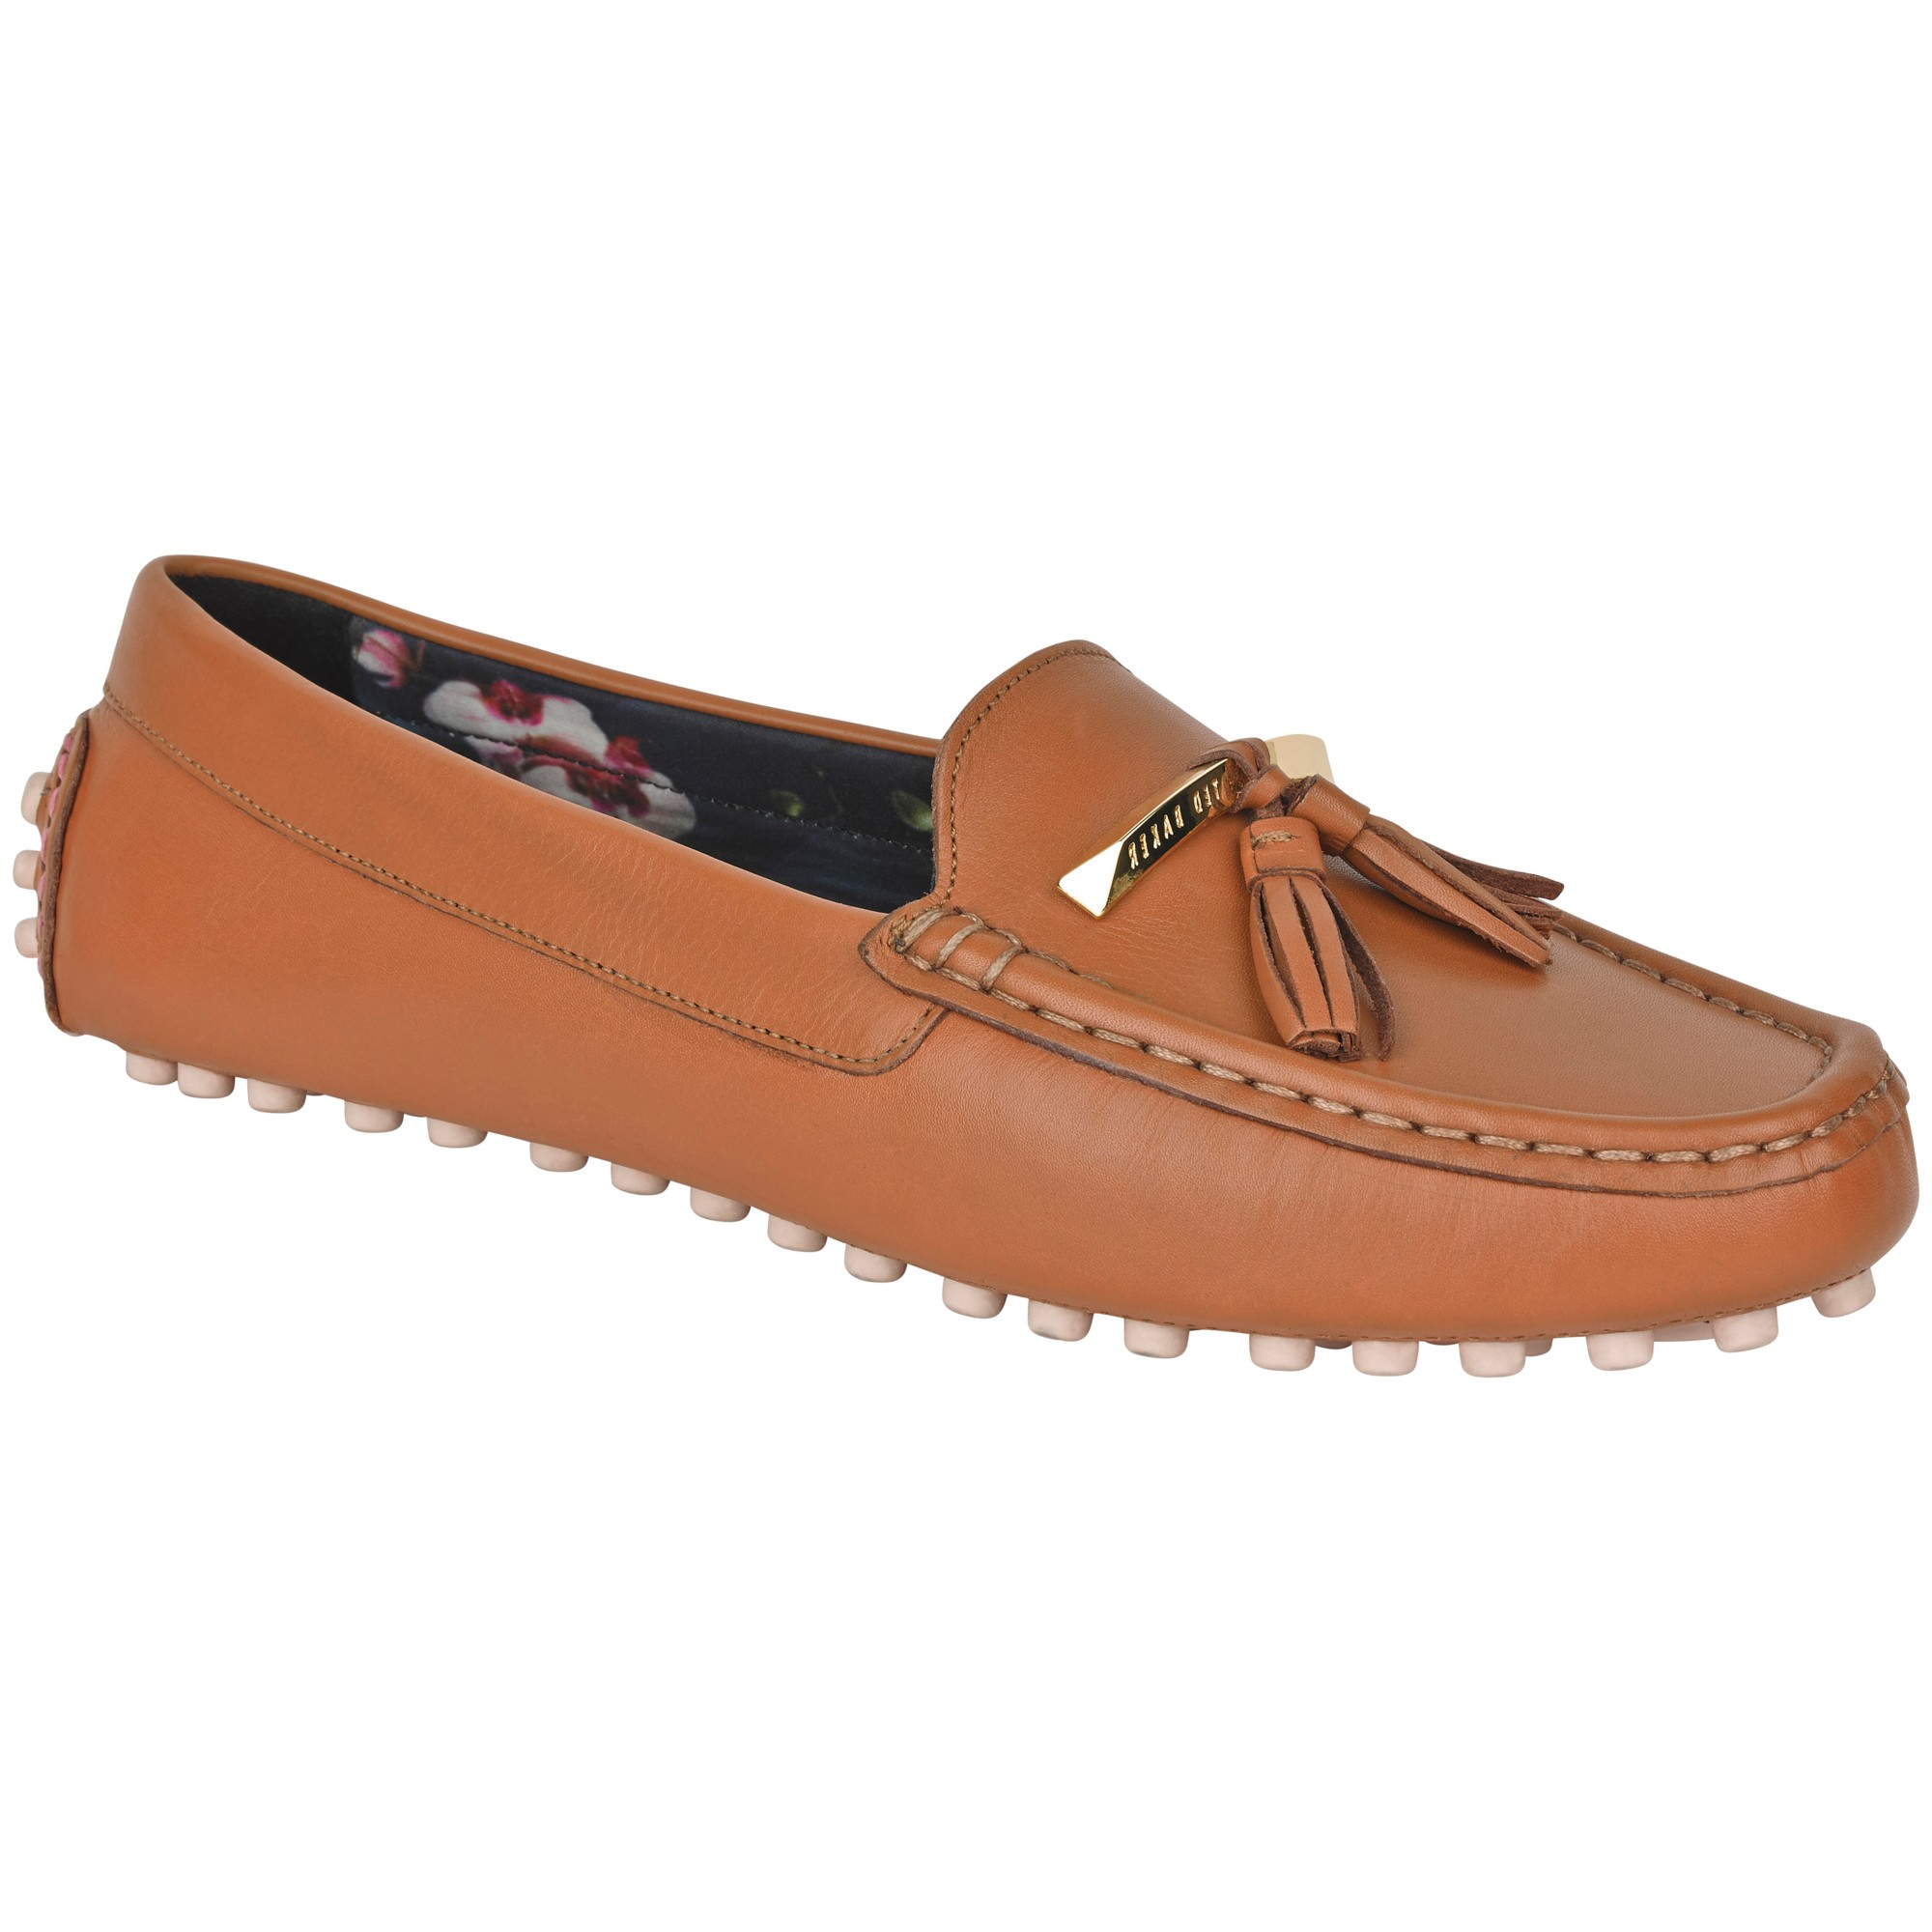 6954f7892bf Ted Baker Harlii Tassel Loafers in Brown - Lyst